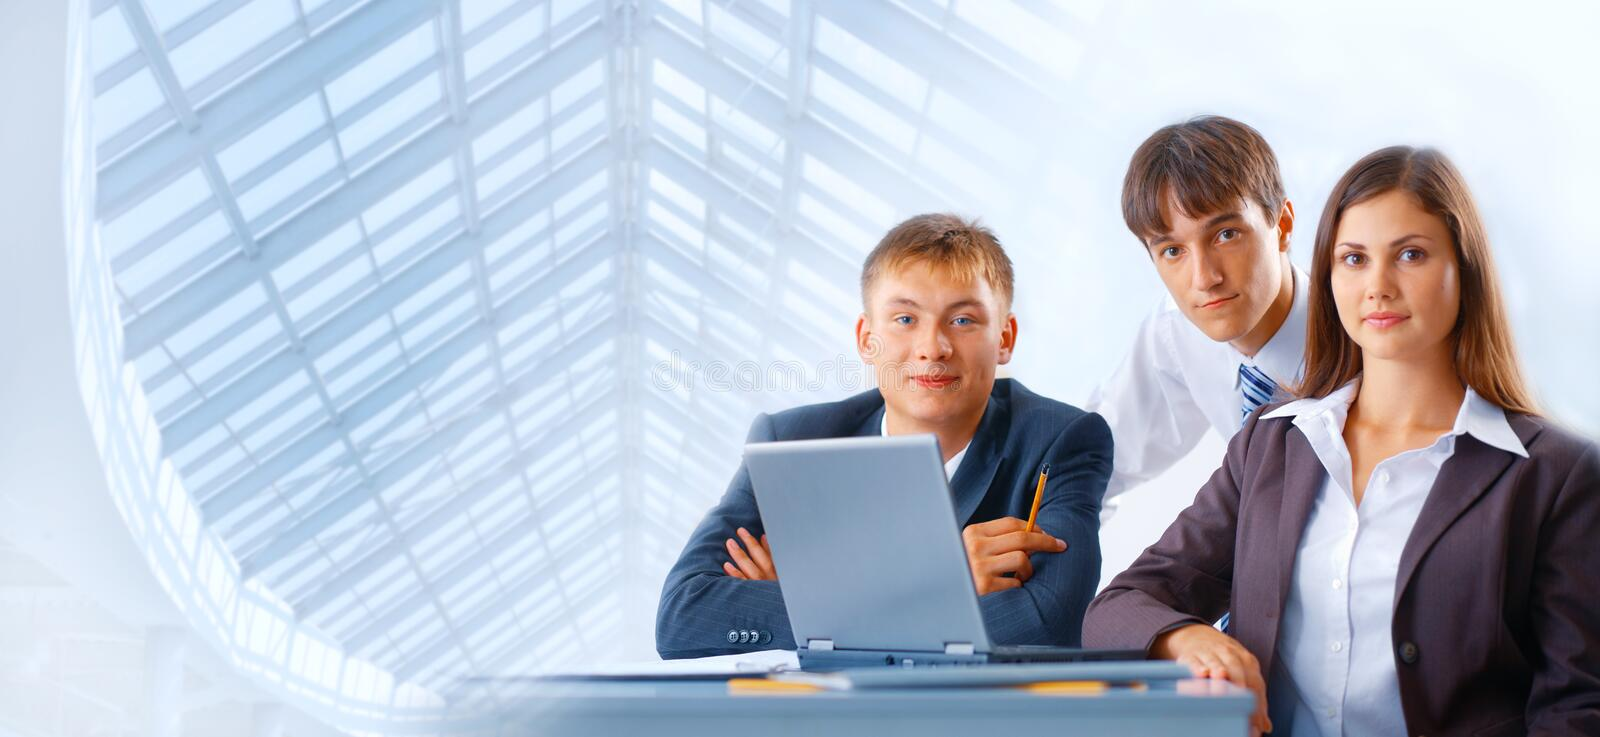 Download Working Business Team Royalty Free Stock Photo - Image: 12620015